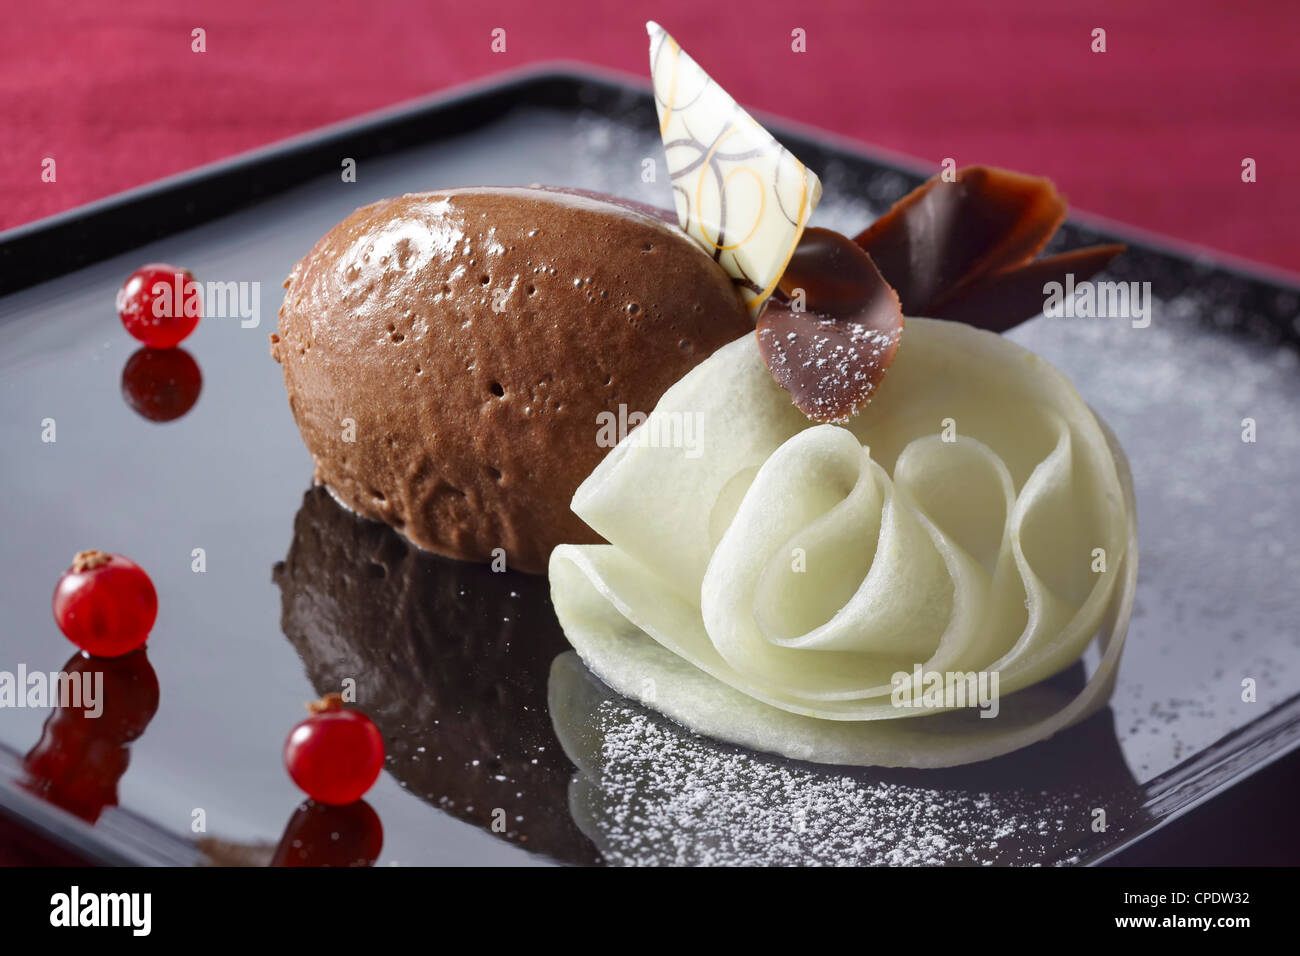 Mousse au chocolate and a blossom formed from melon, decorated with currants and chocolate chips. Red table cloth. - Stock Image